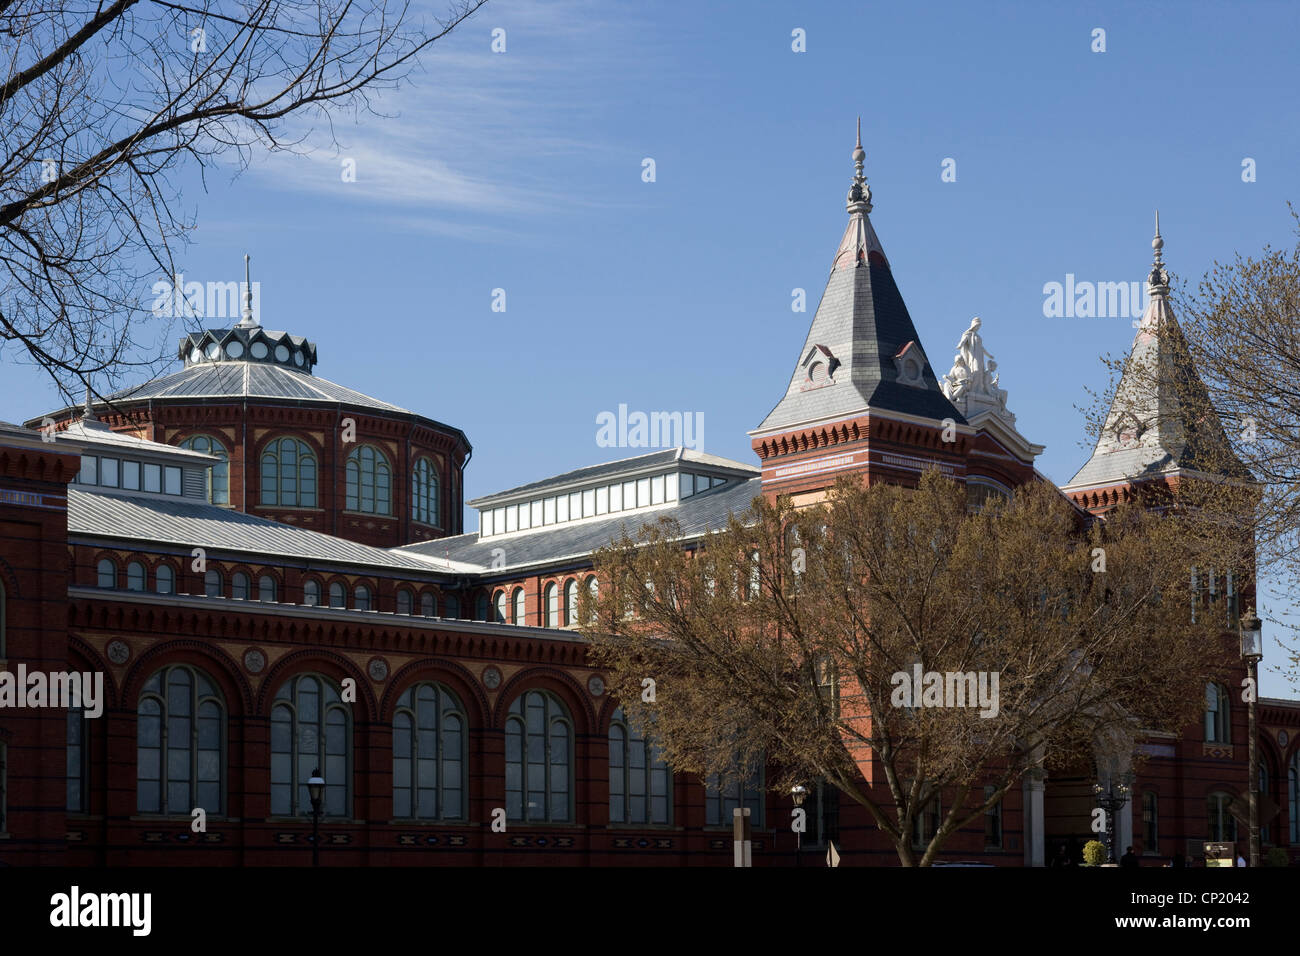 Arts and Industries Building, Smithsonian Institution, Washington D.C. USA, Architects: Architects: Adolf Cluss - Stock Image